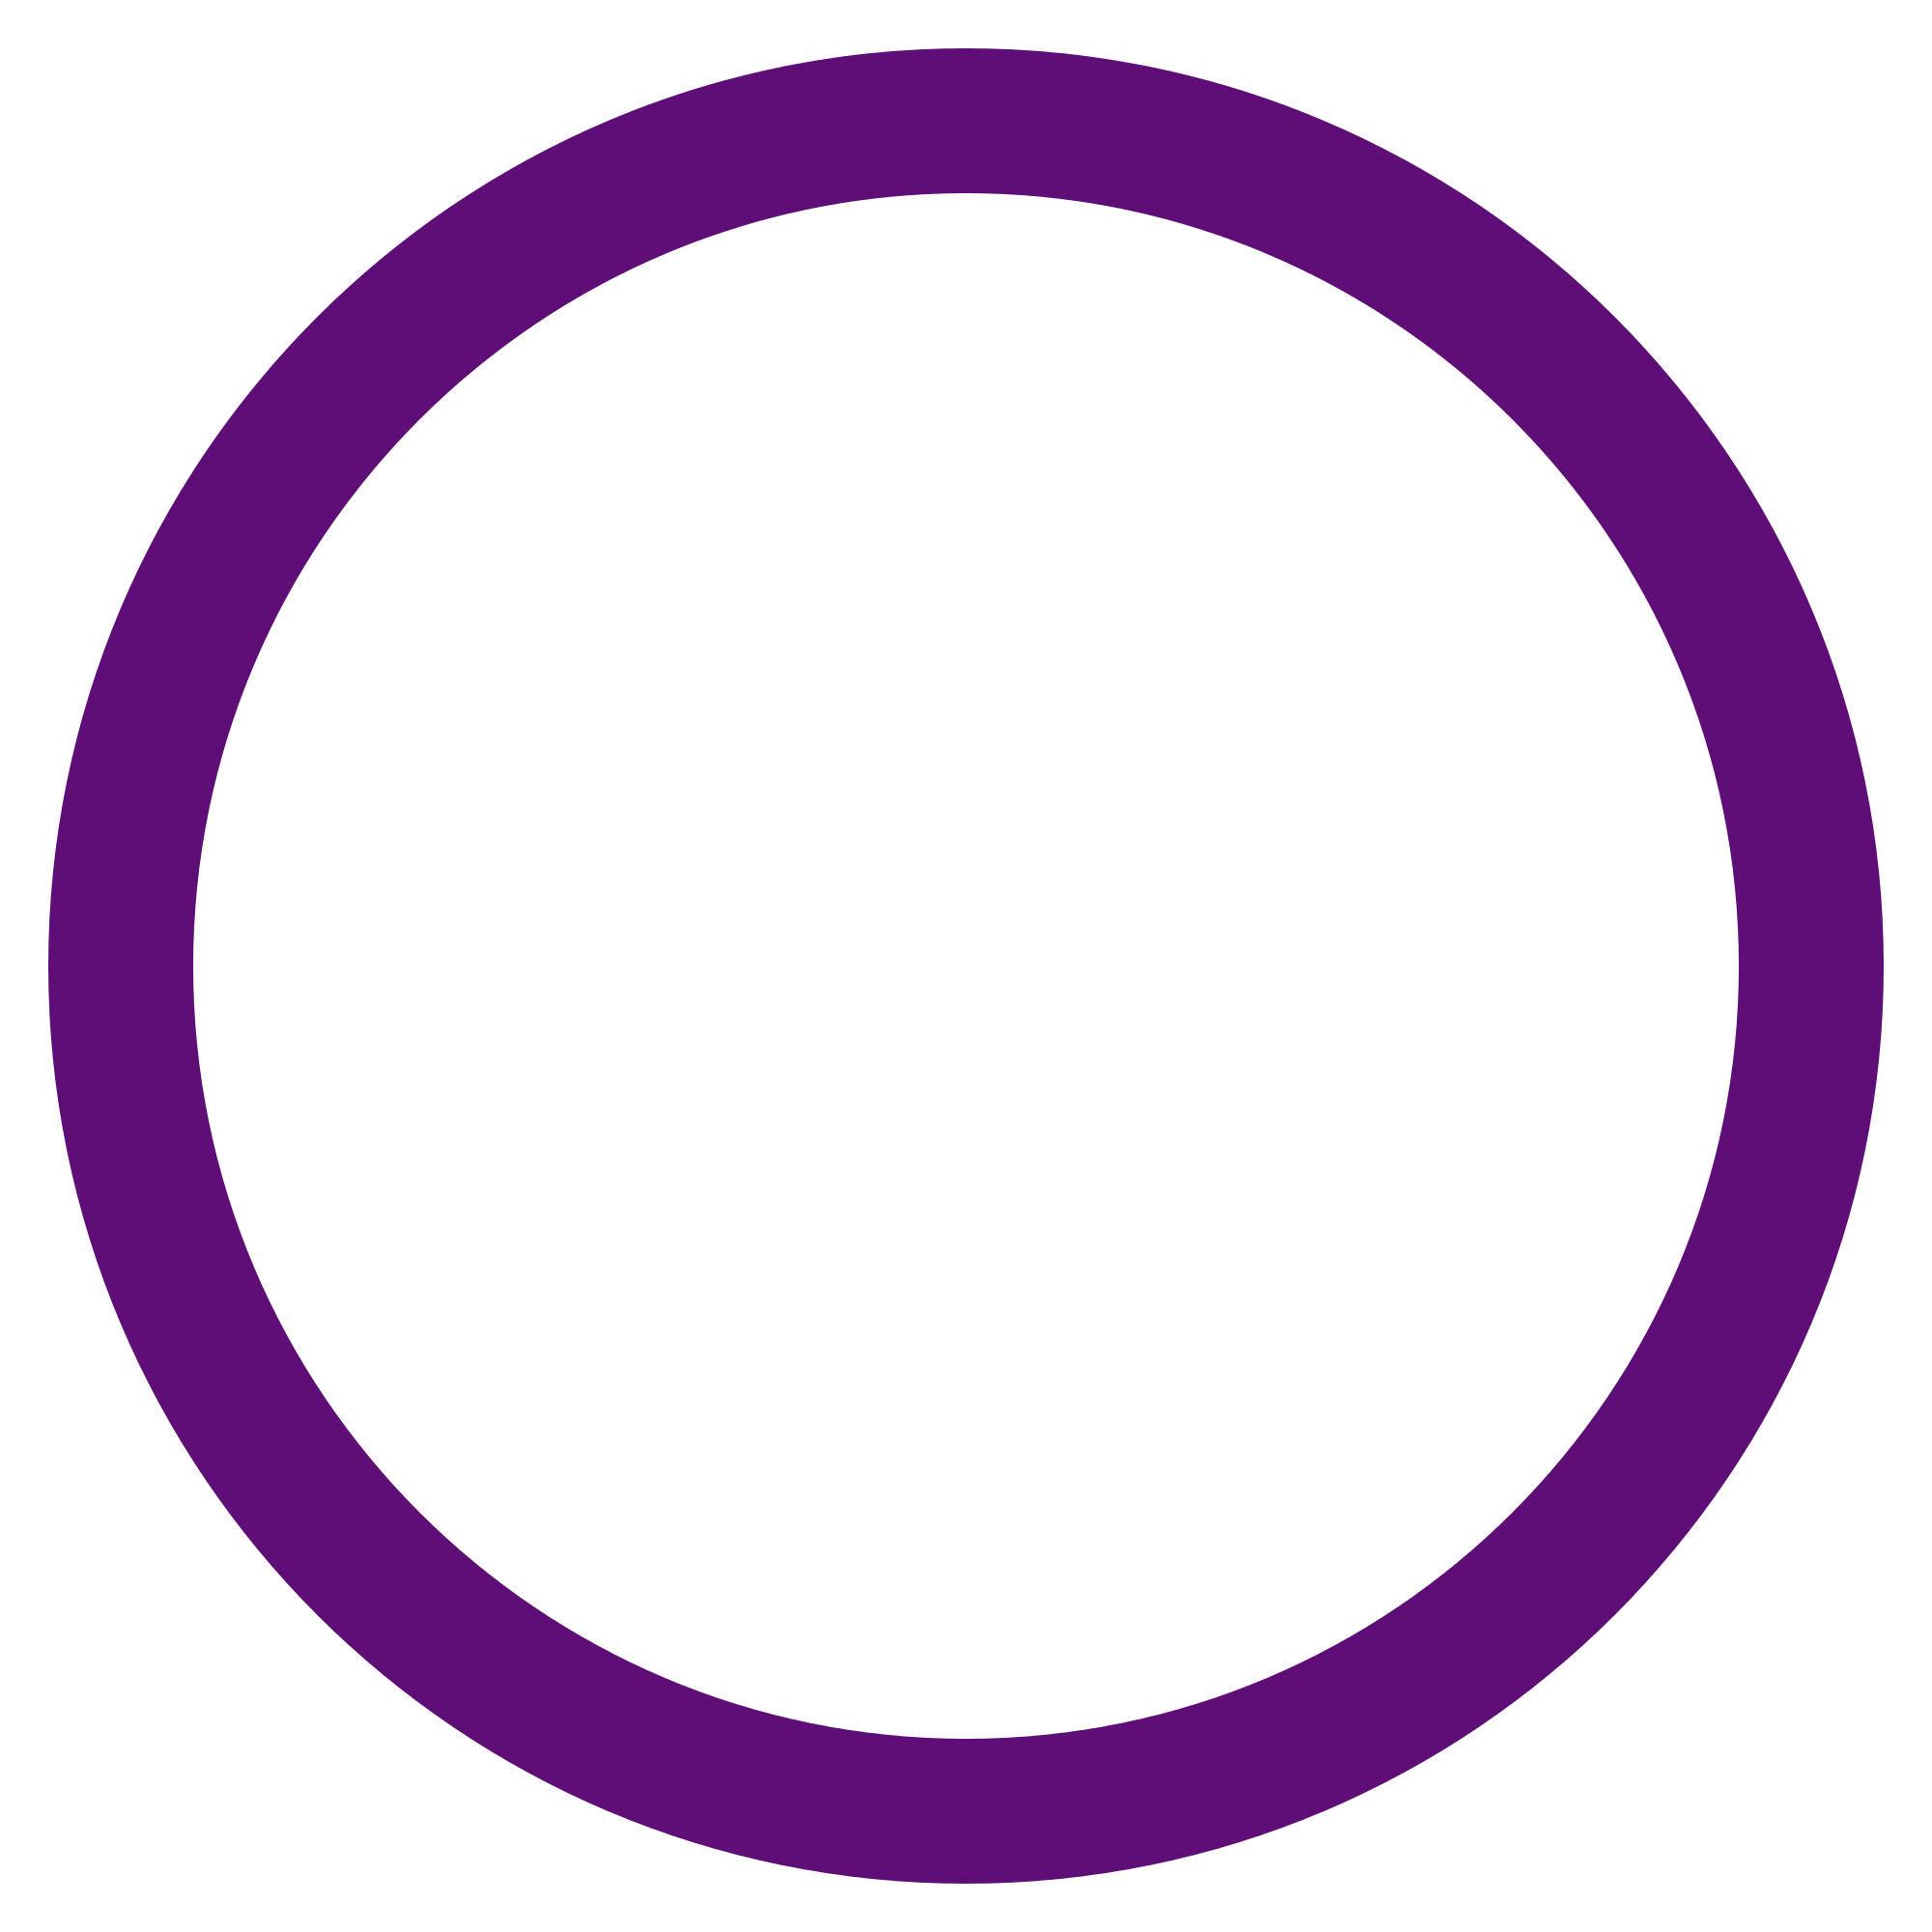 Symbolism of a circle images symbol and sign ideas symbolismstep 3 menstruation fear evil tortures bucket a purple circle is a symbol for gender neutrality buycottarizona